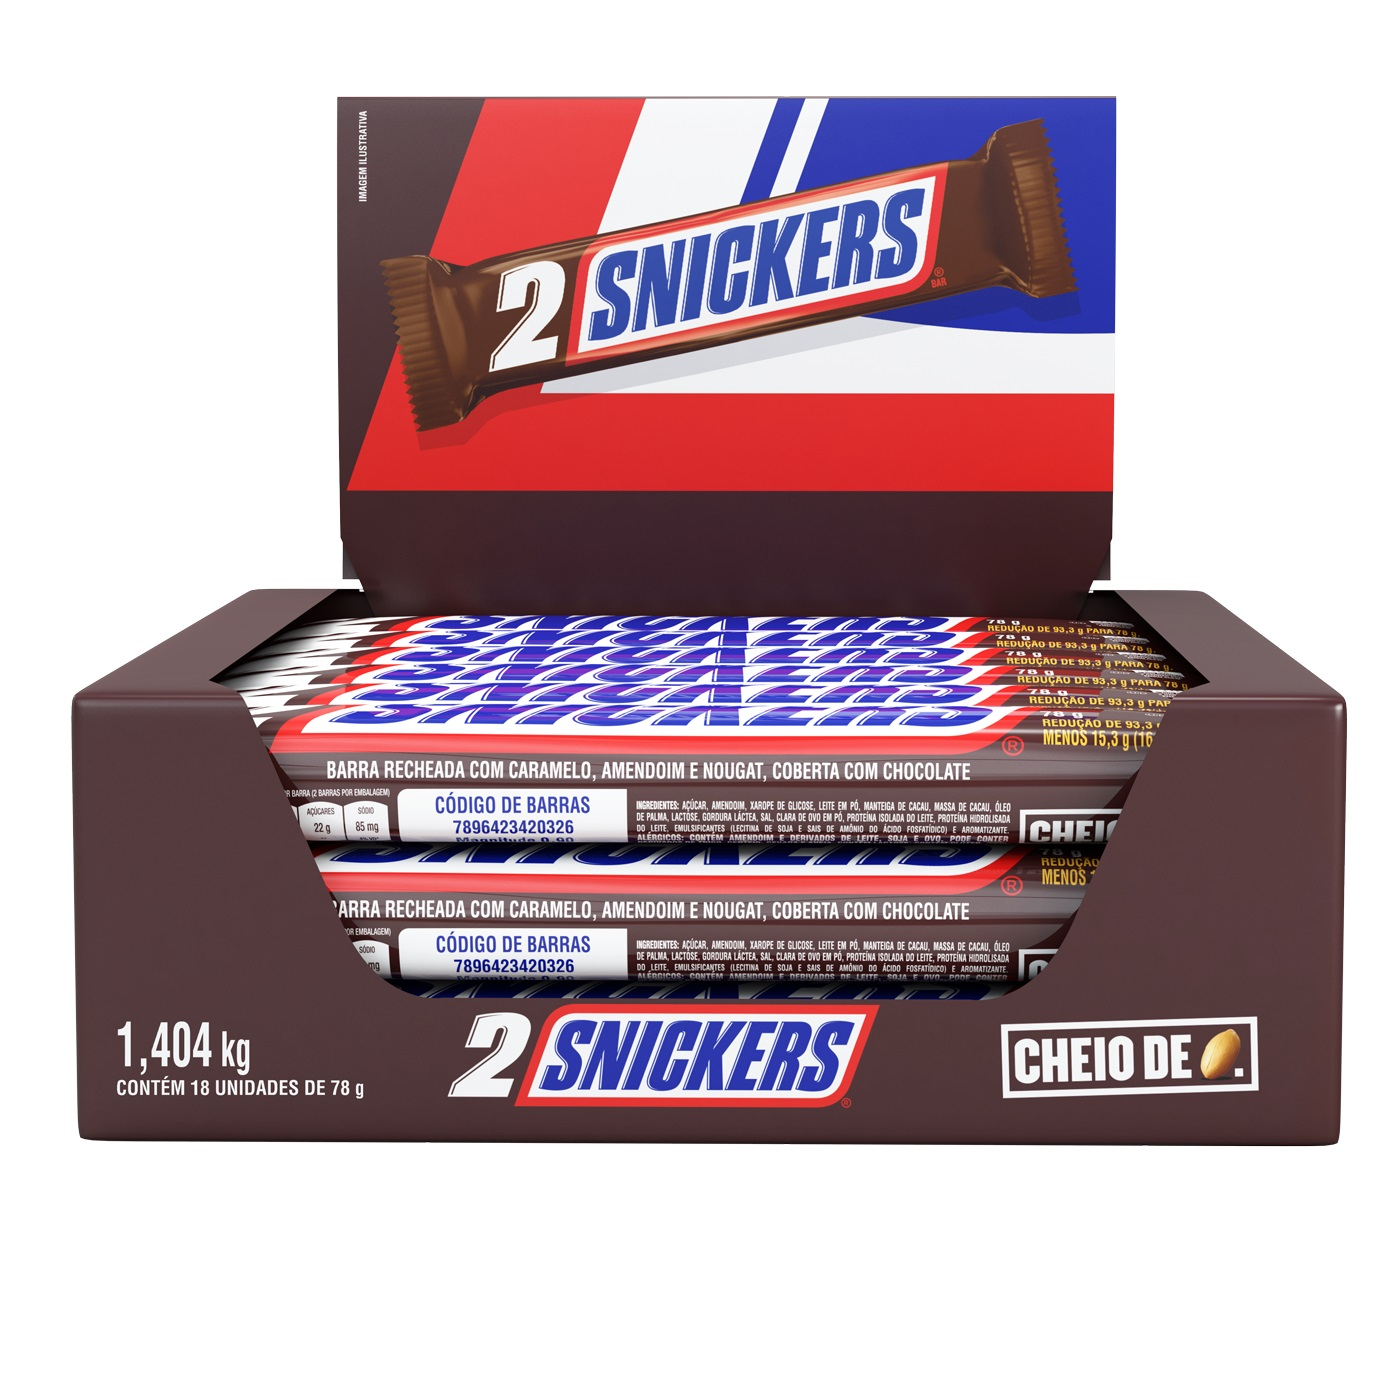 SNICKERS 2 BARRAS DP18 X 78G CX/6